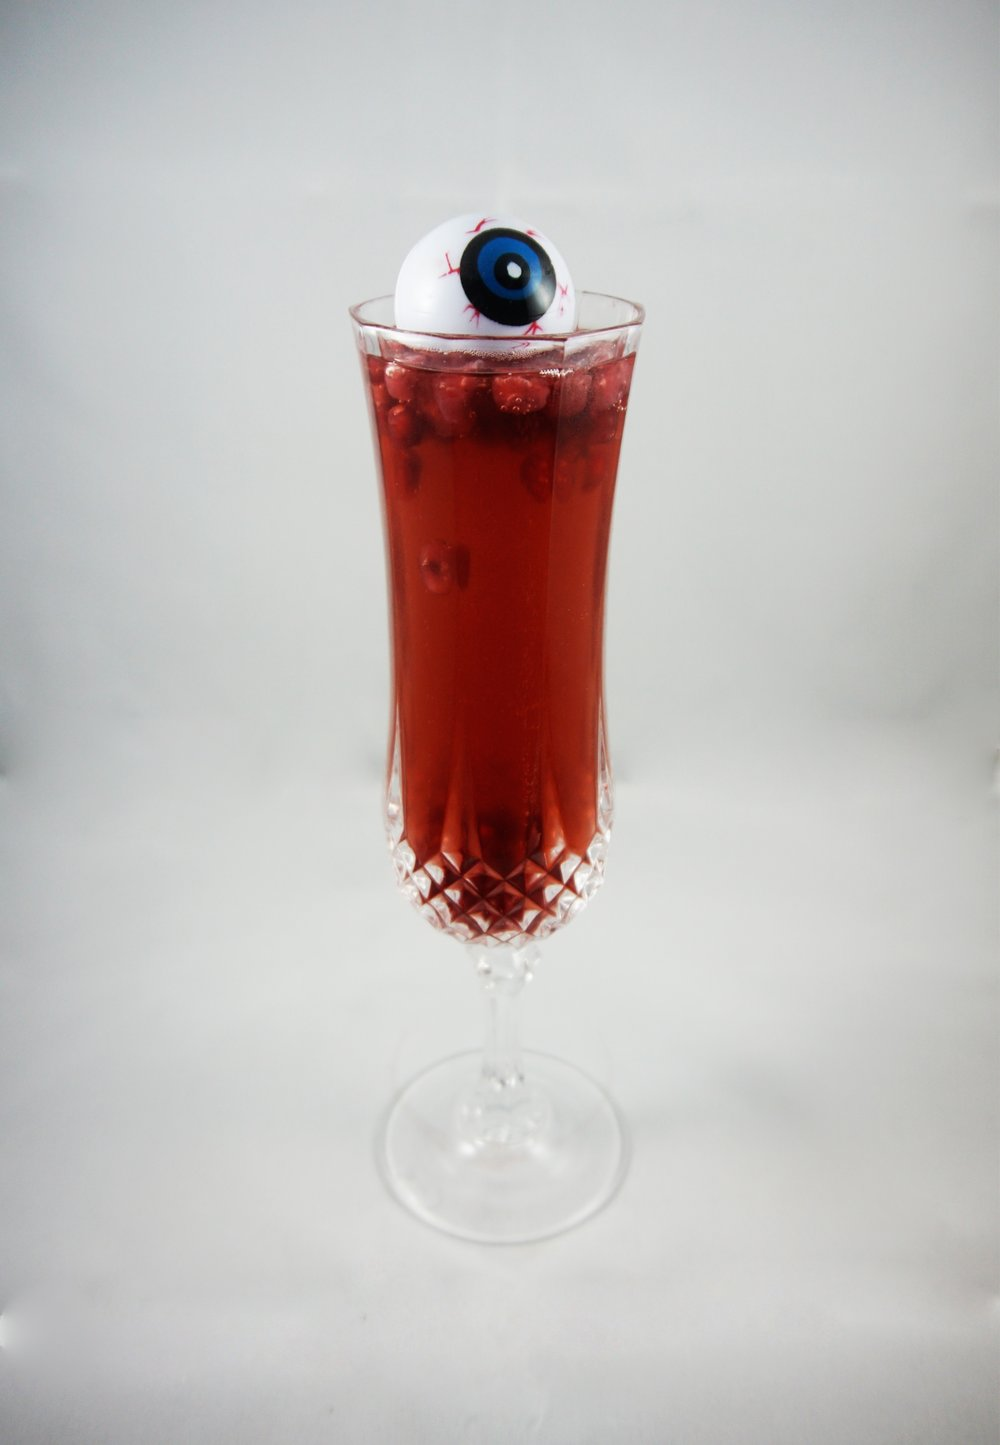 Better Watch Out (2017)   - ChampagneRaspberry liqueurCranberry bittersPomegranate seeds Pour raspberry liqueur, pomegranate seeds, and cranberry bitters in glass. Top with champagne. No exact measurements needed - just eyeball it.